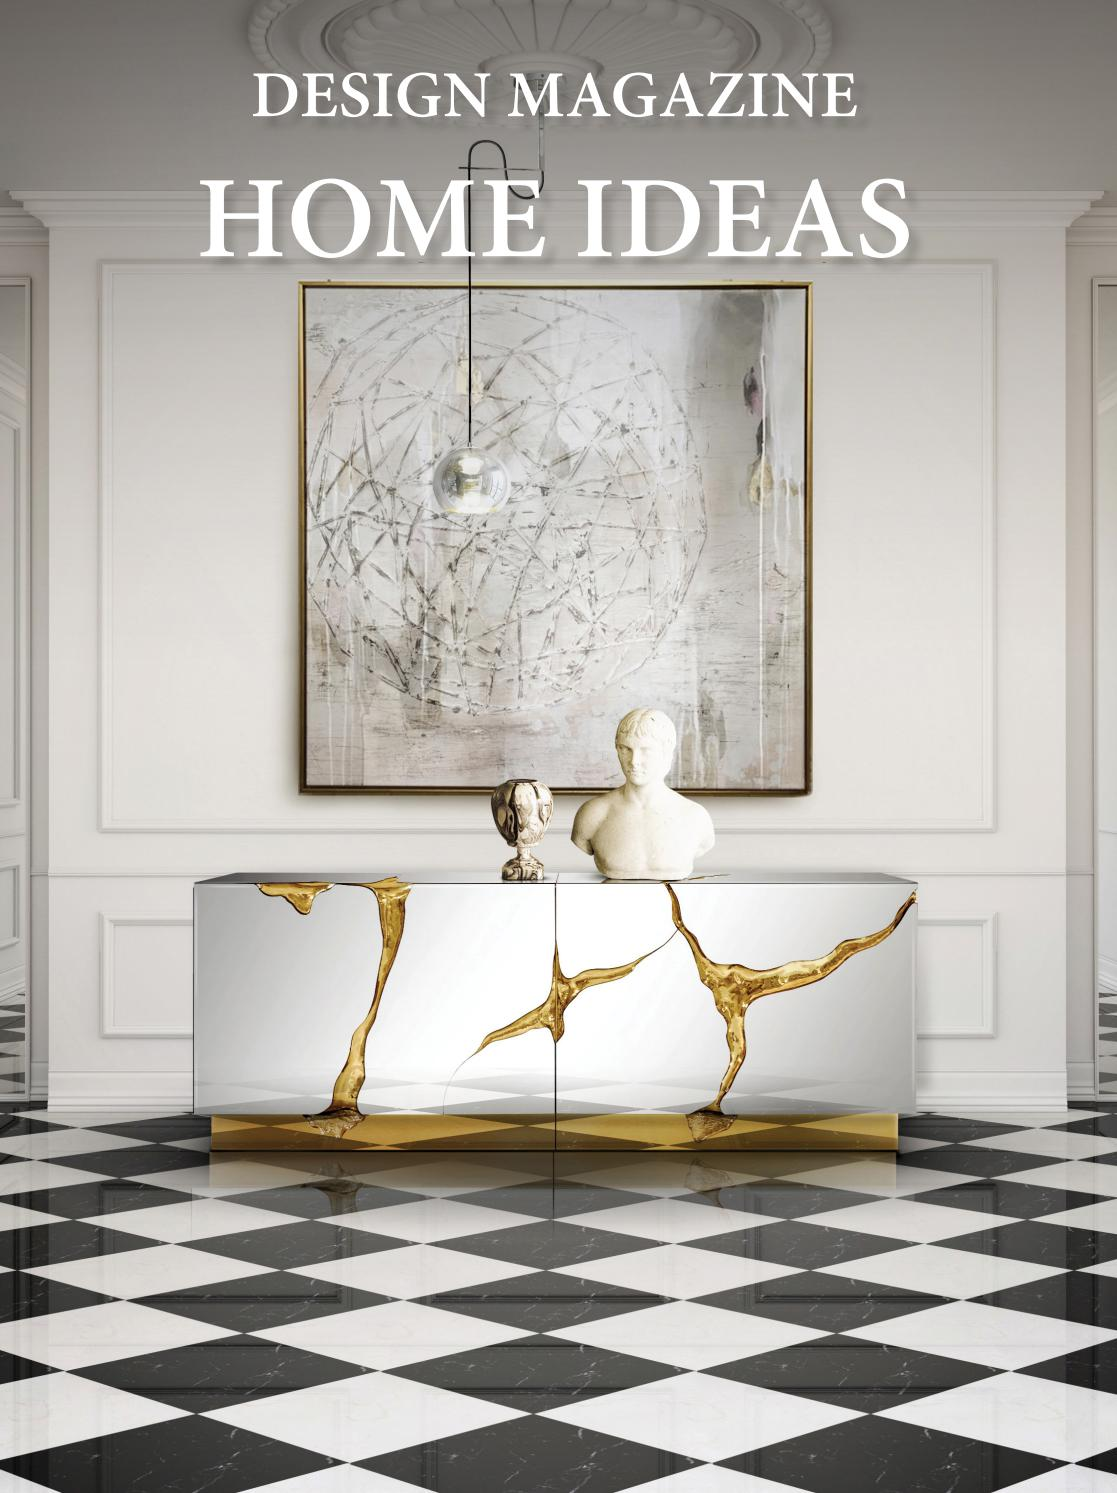 Design magazine home ideas by home living magazines for Interior design online magazine